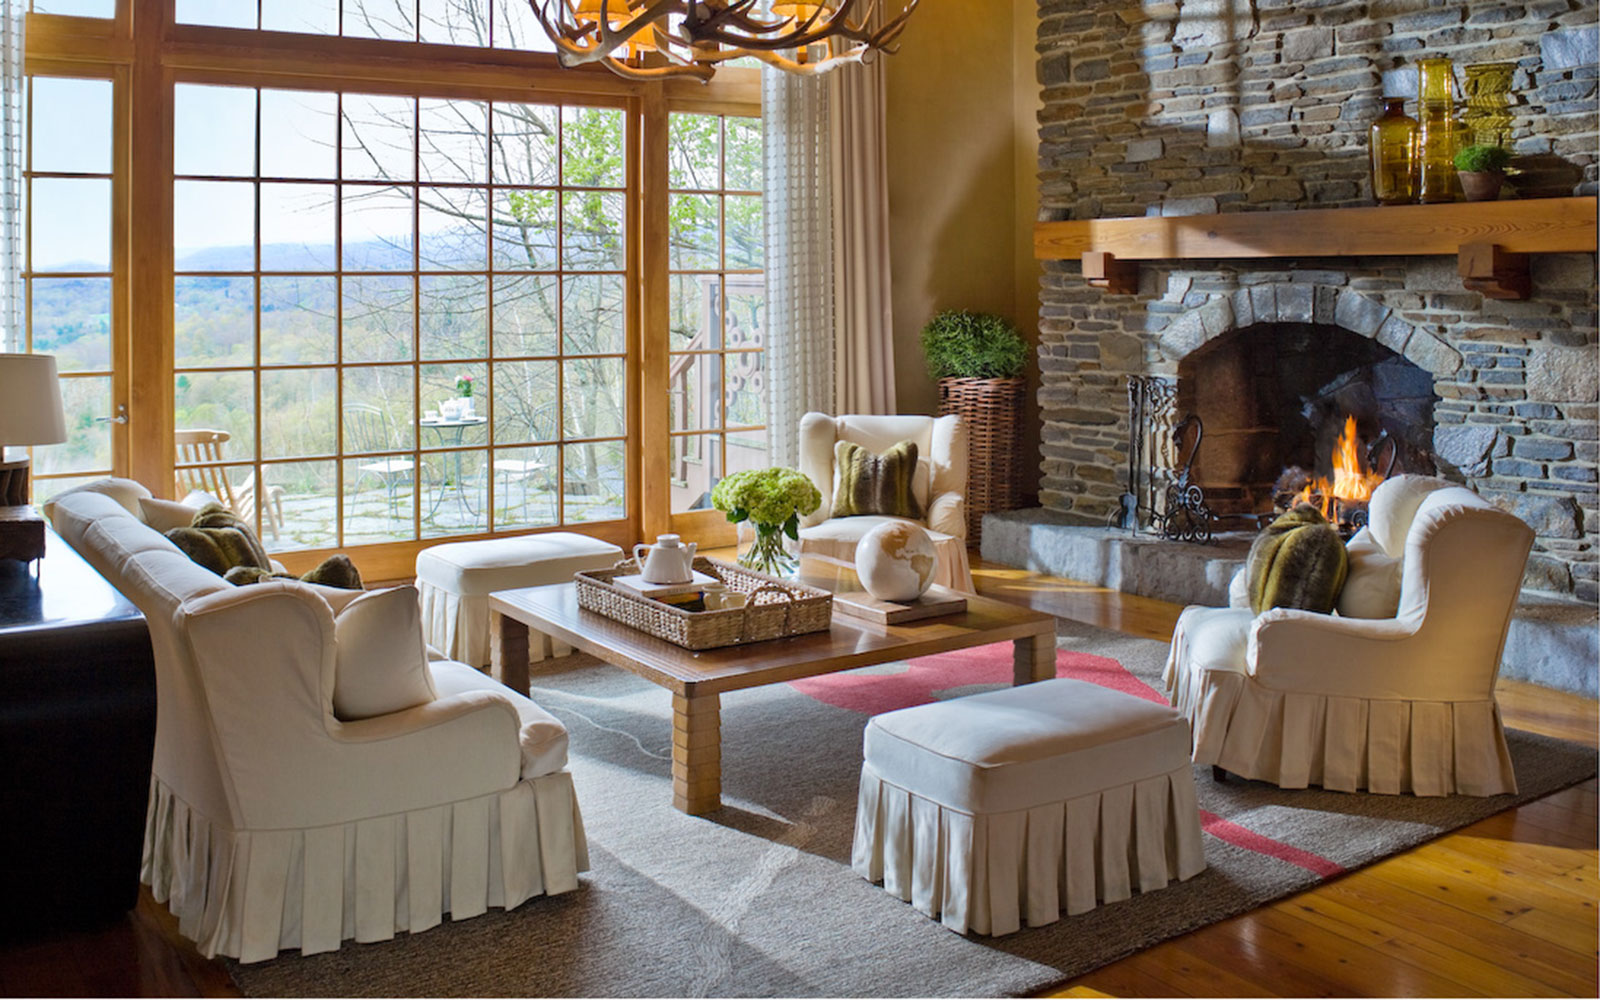 Most Romantic Fall Getaways: Twin Farms